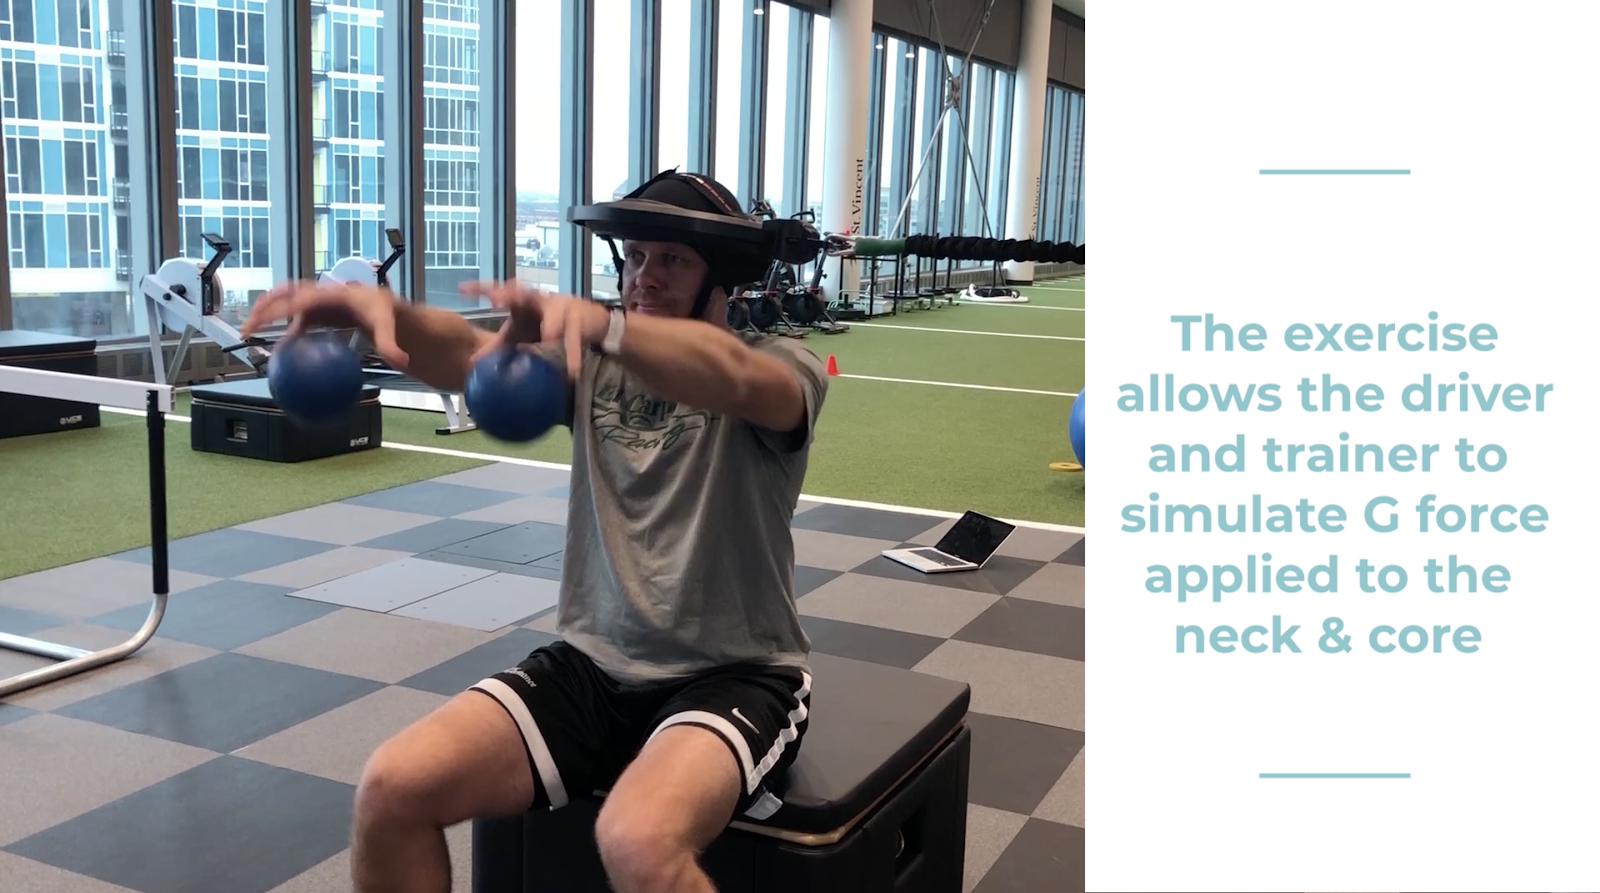 The exercise allows the driver and trainer to simulate G force applied to the neck & core incorporating Iron Neck. IndyCar driver Ed Carpenter.